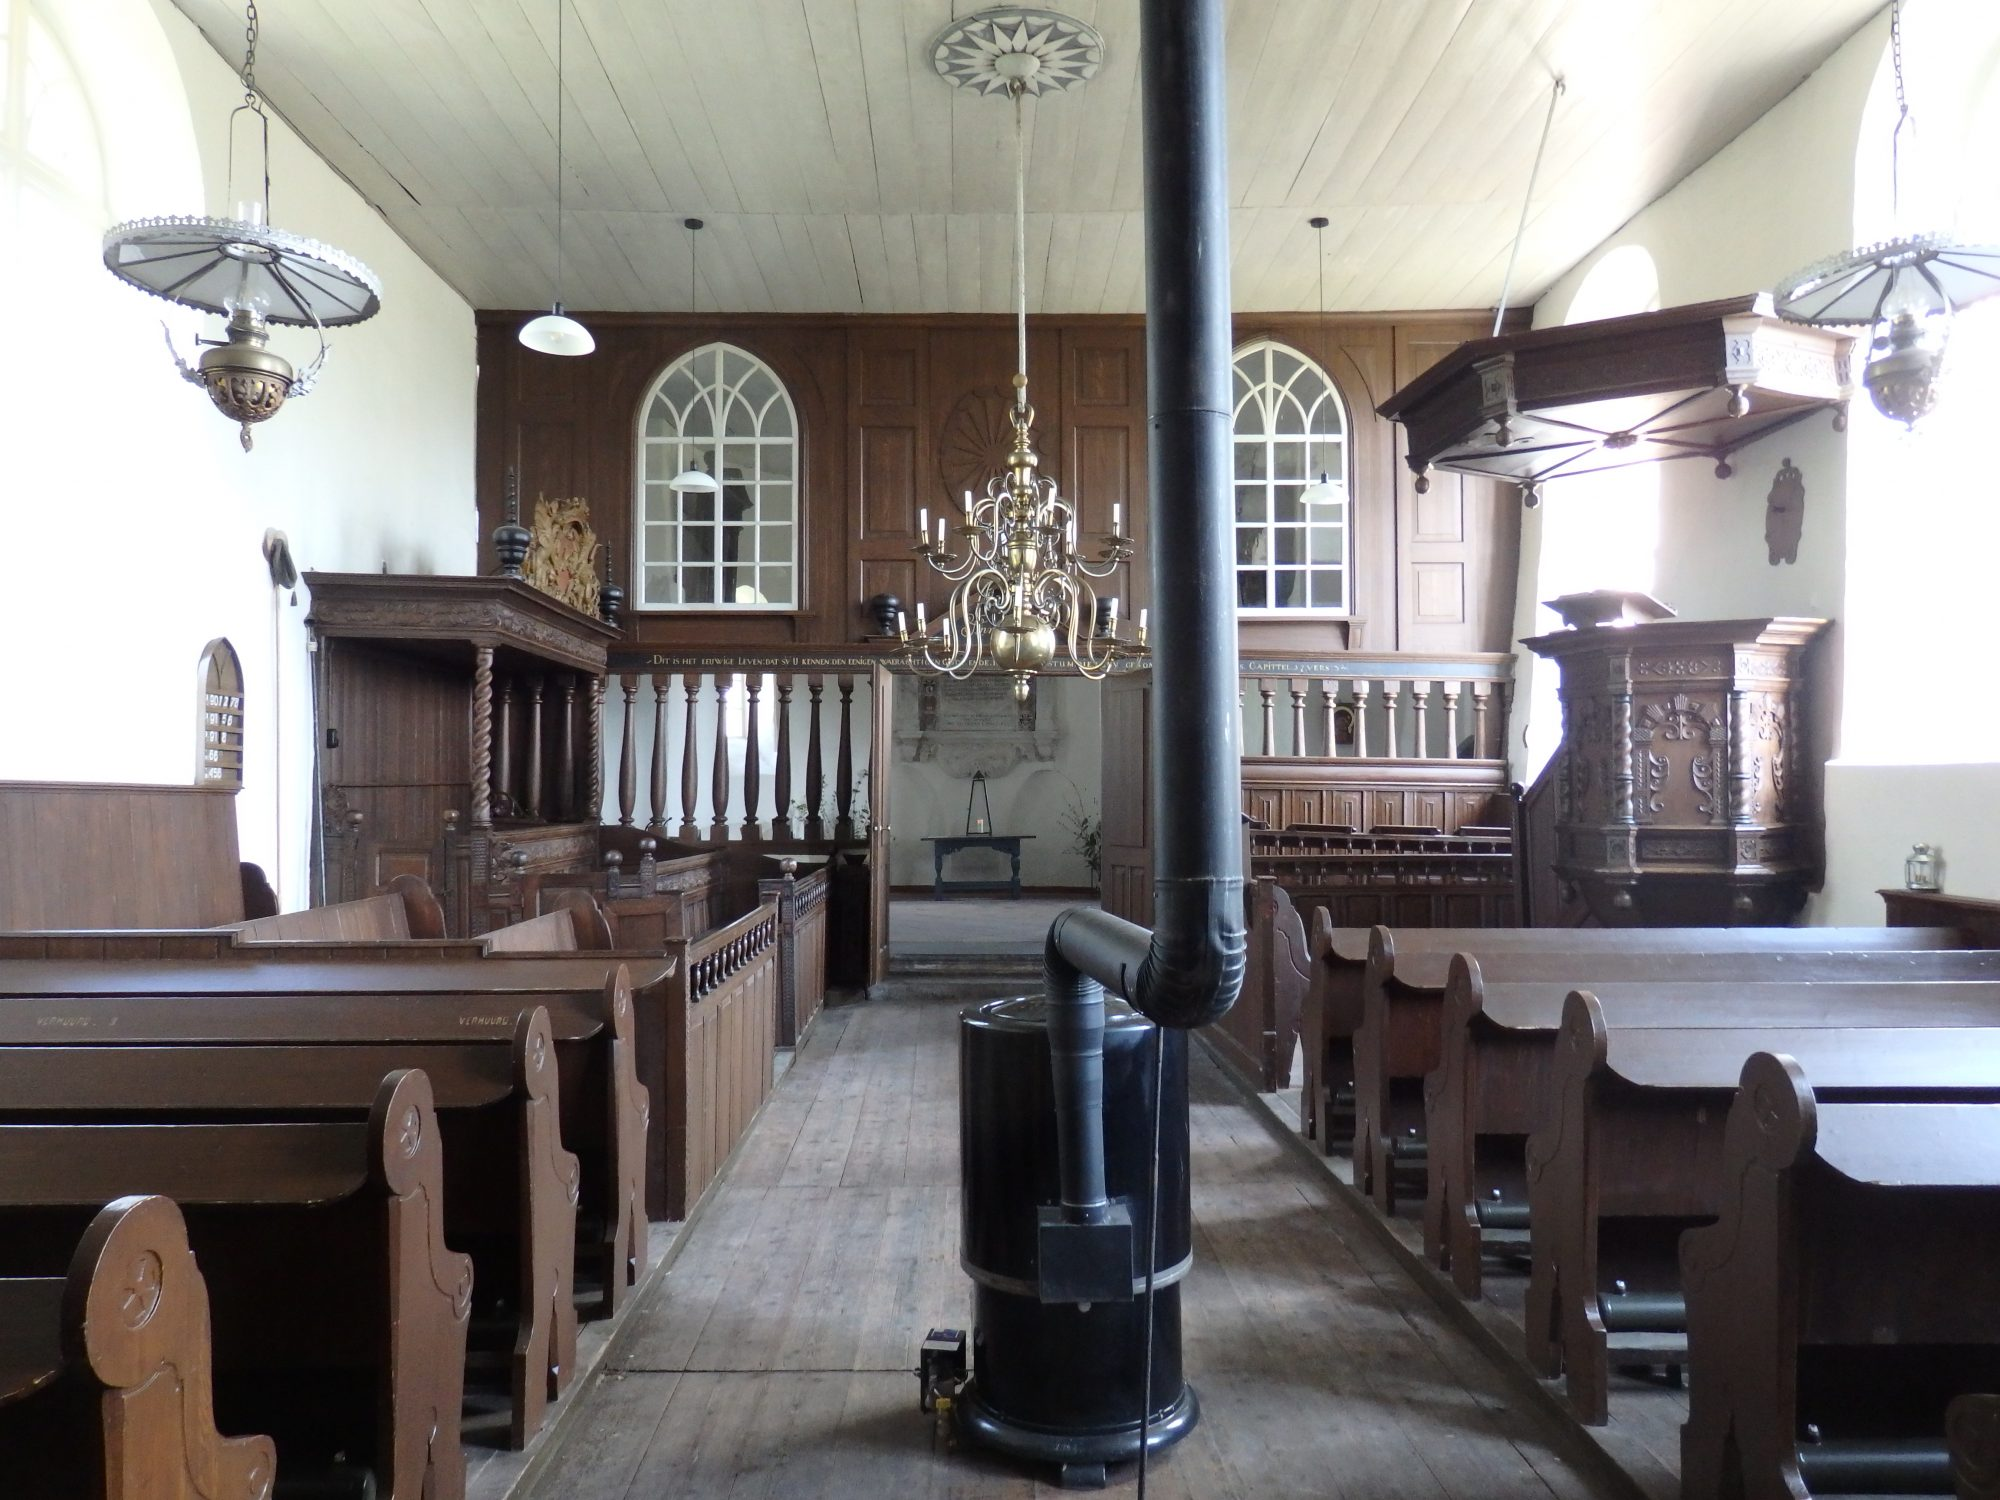 The interior of Oosterwijtwerd church, with a 19th century partition in front of the altar.